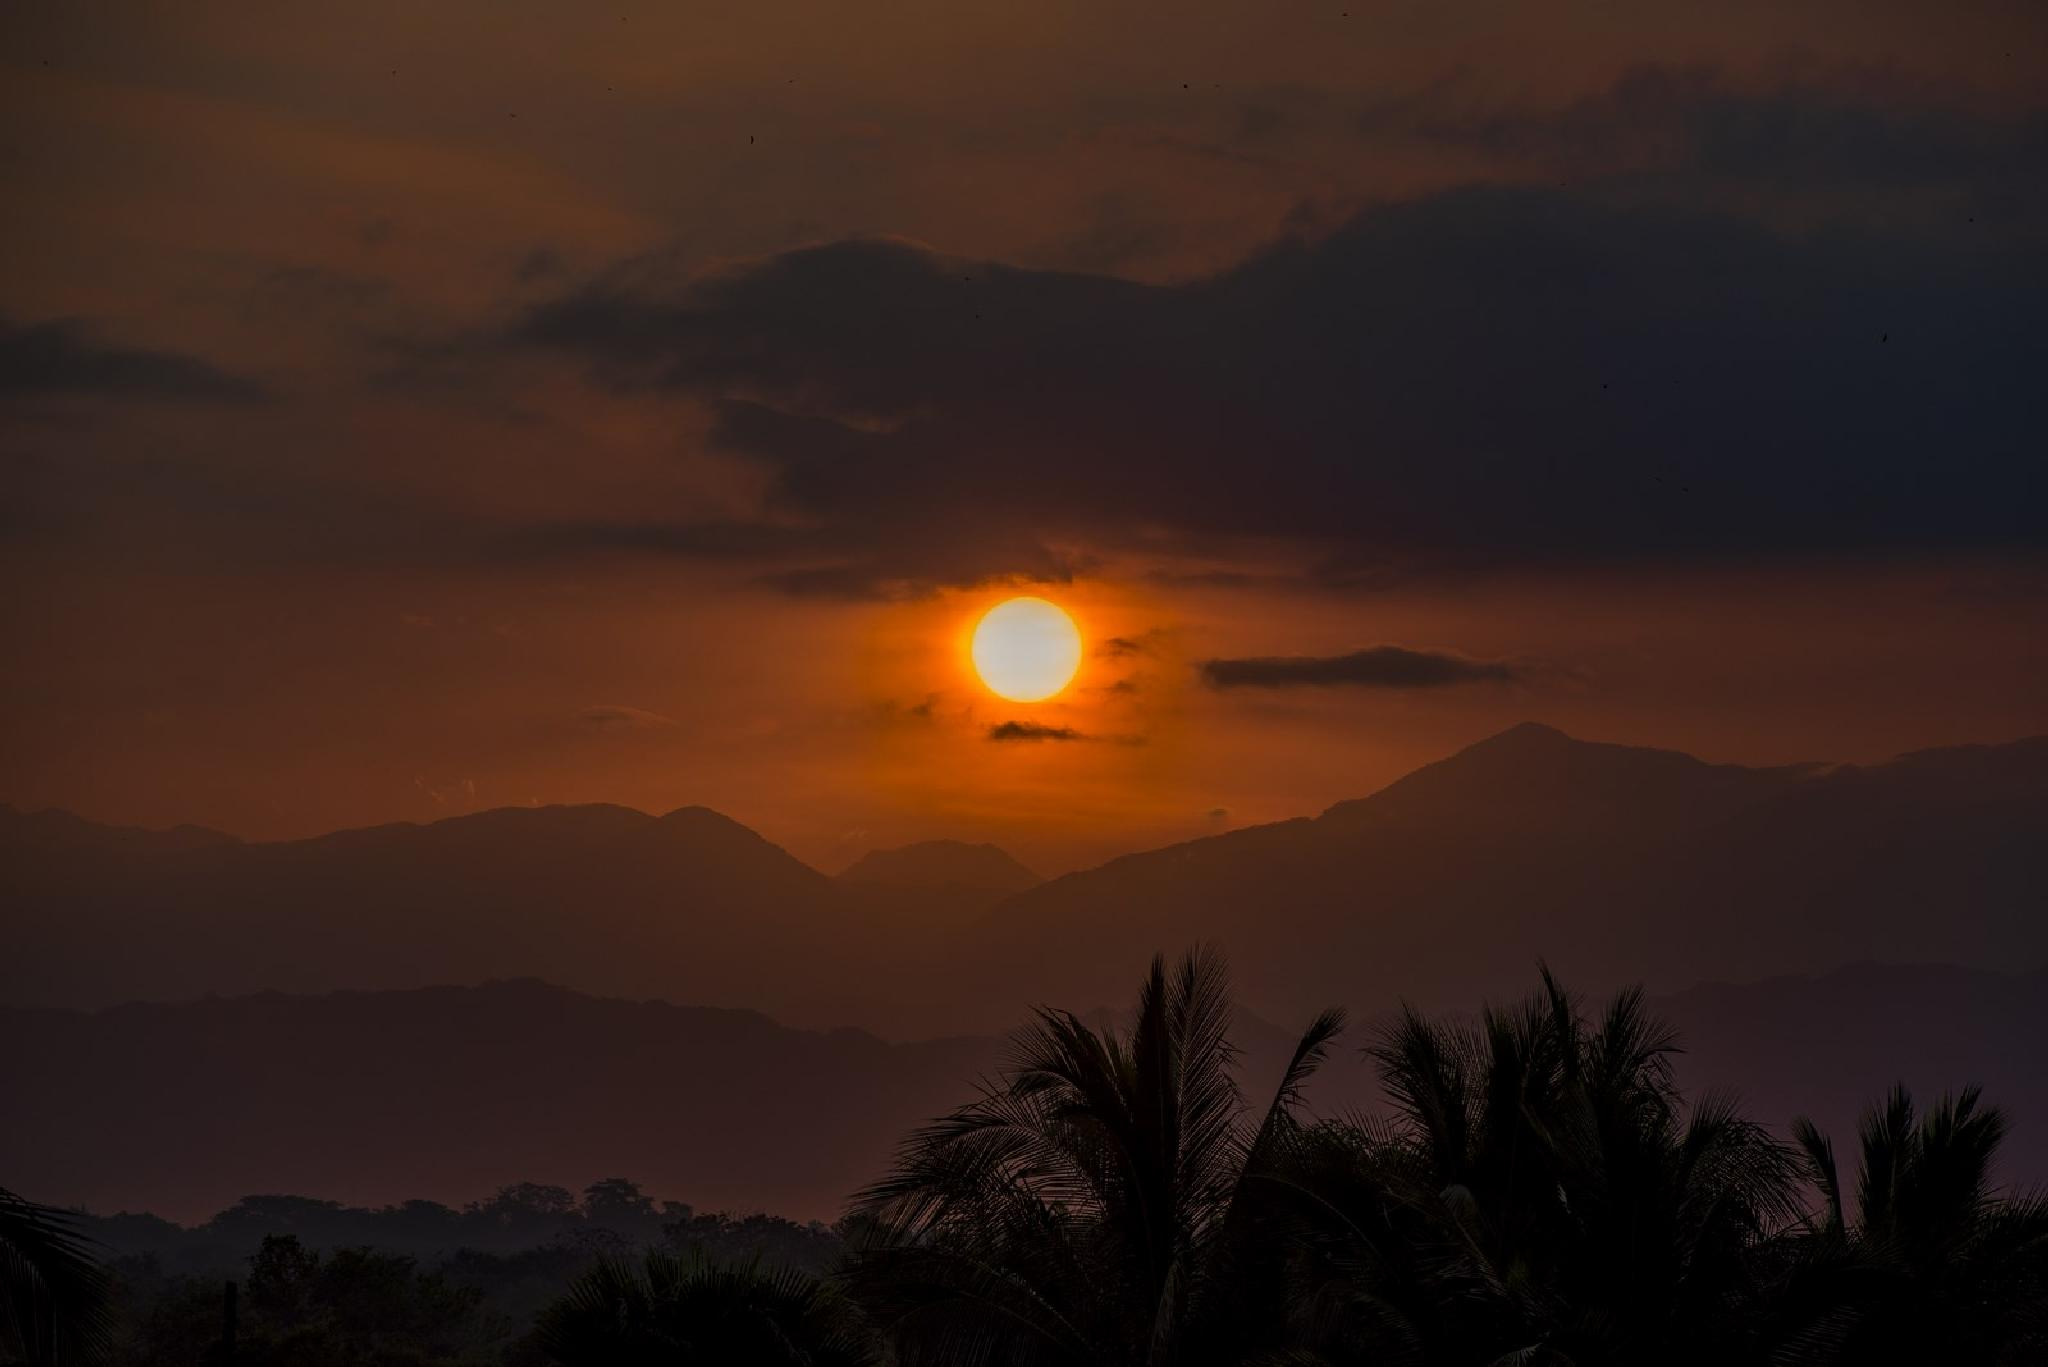 Sunrise. View of the mountains of the Sierra Madre Occidental by Waldemar Sadlowski